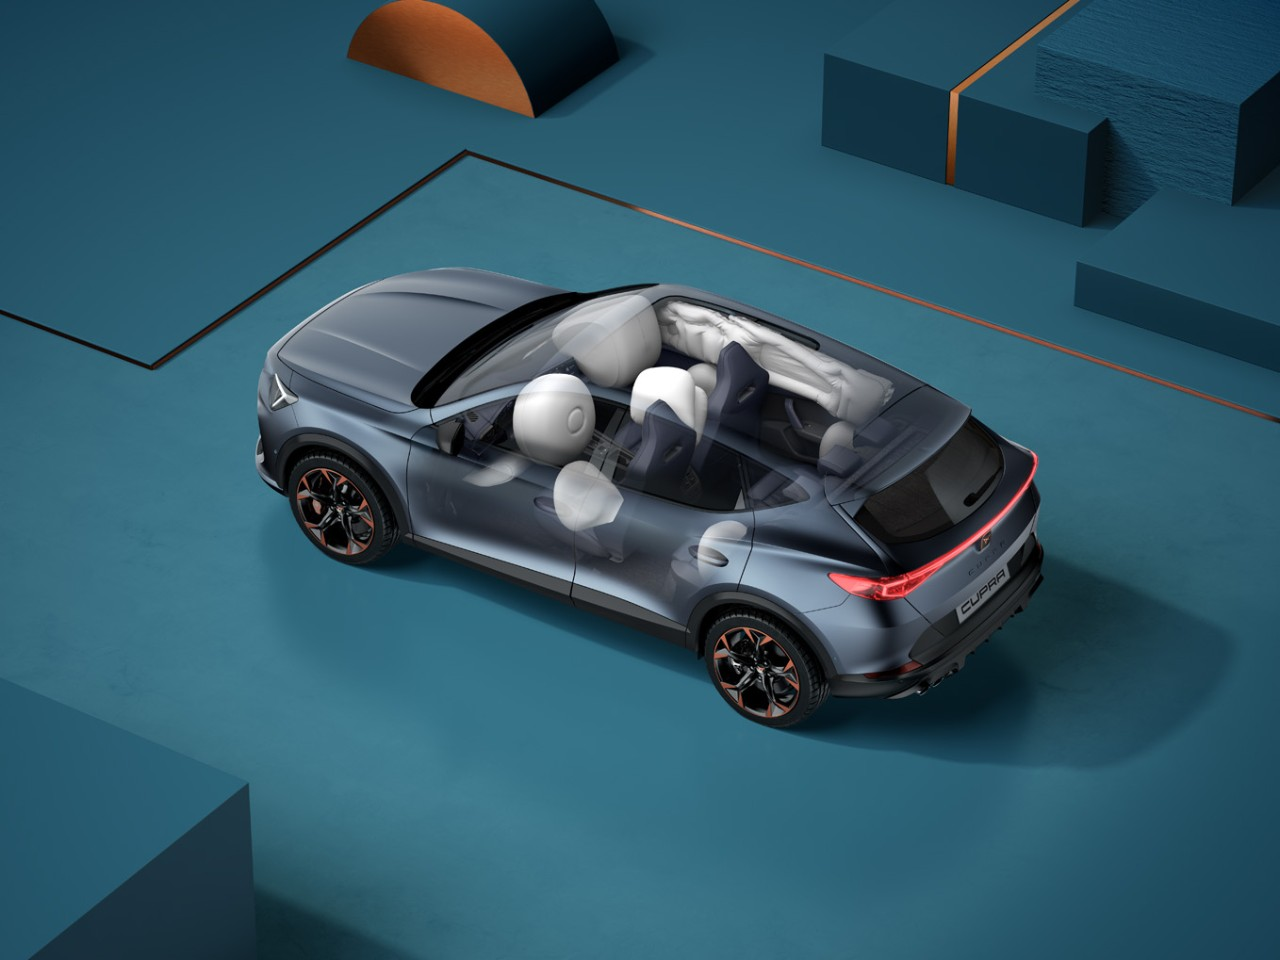 CUPRA%20Formentor%20achieves%205-star%20rating%20in%20the%20stricter%20Euro%20NCAP%20safety%20tests